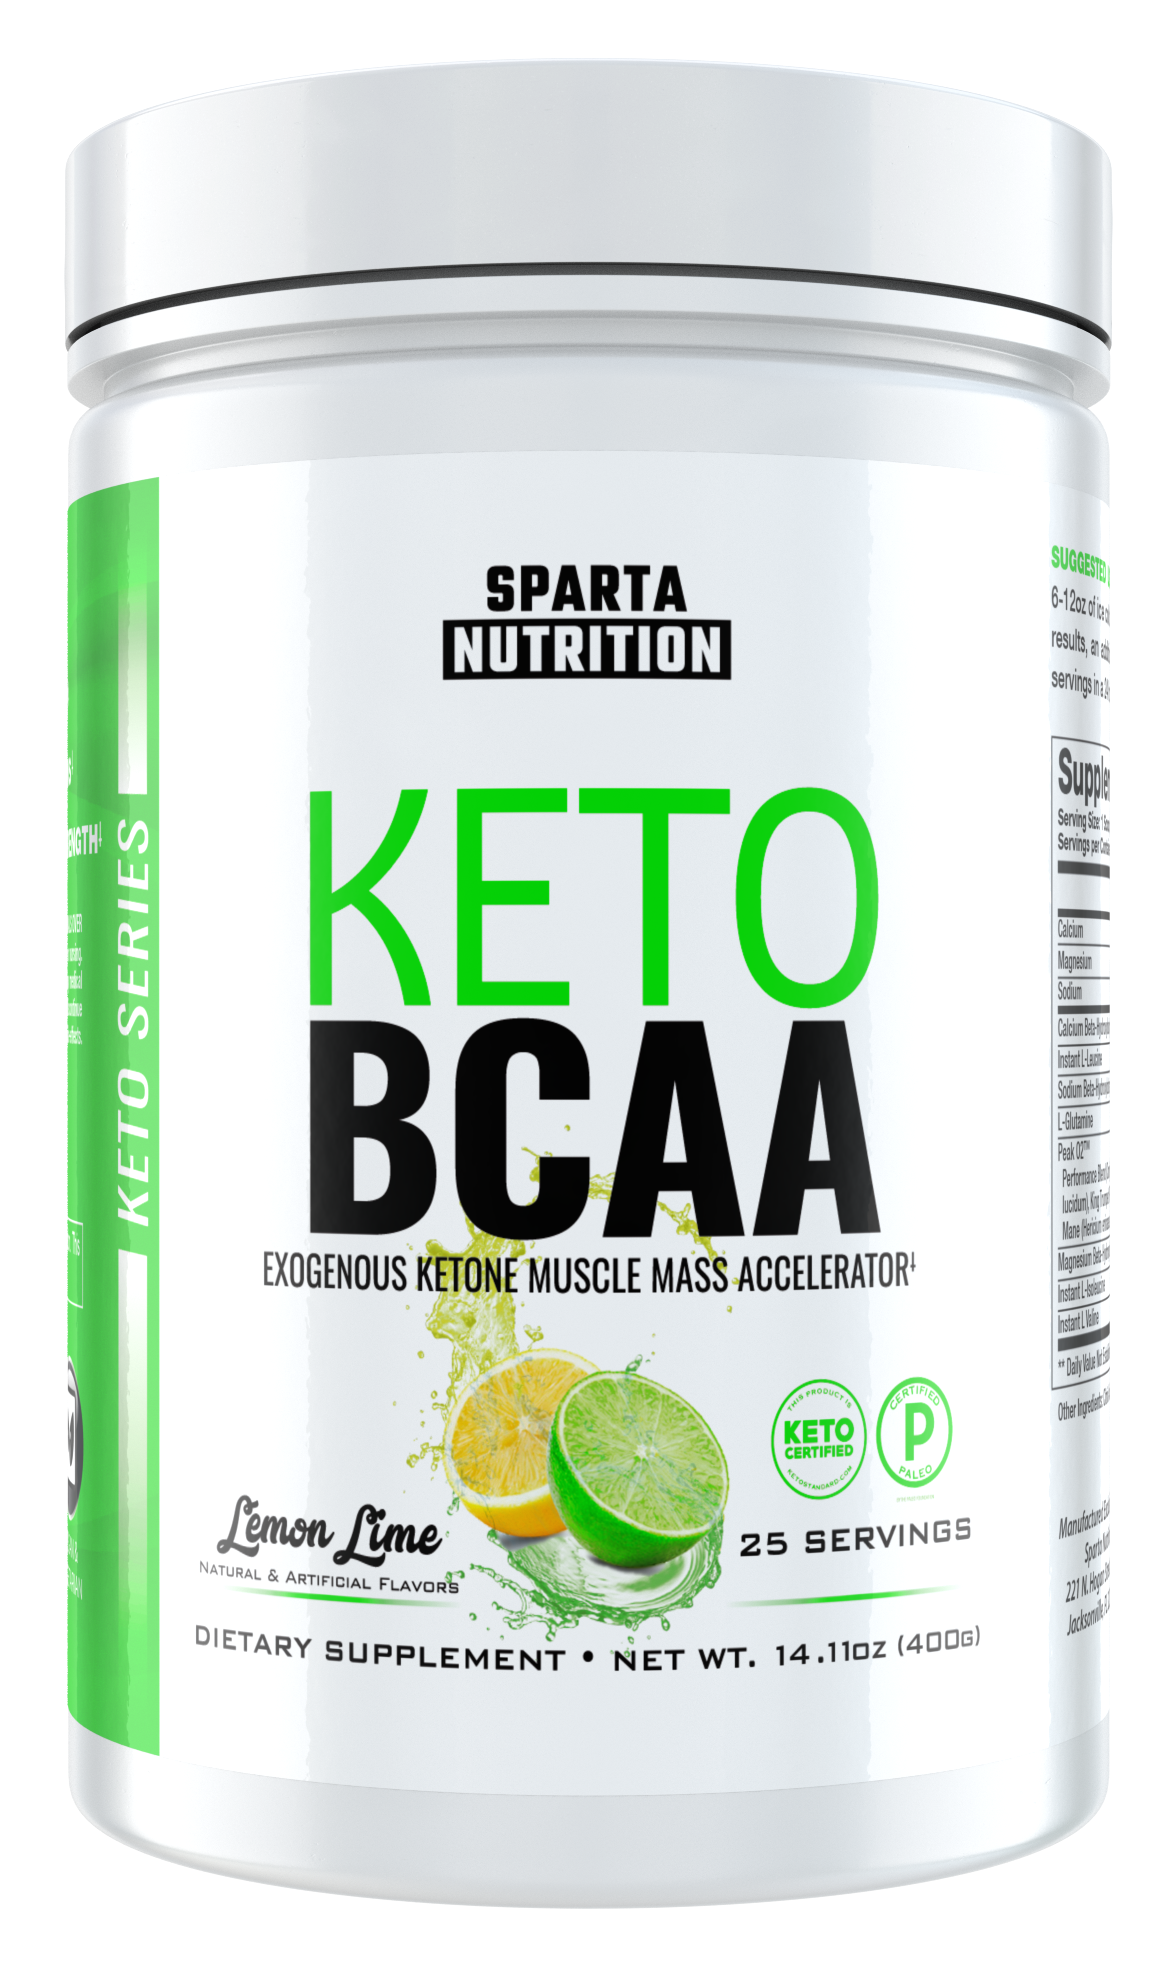 Sparta Nutrition Keto BCAA: A Workout Drink for Keto Dieters